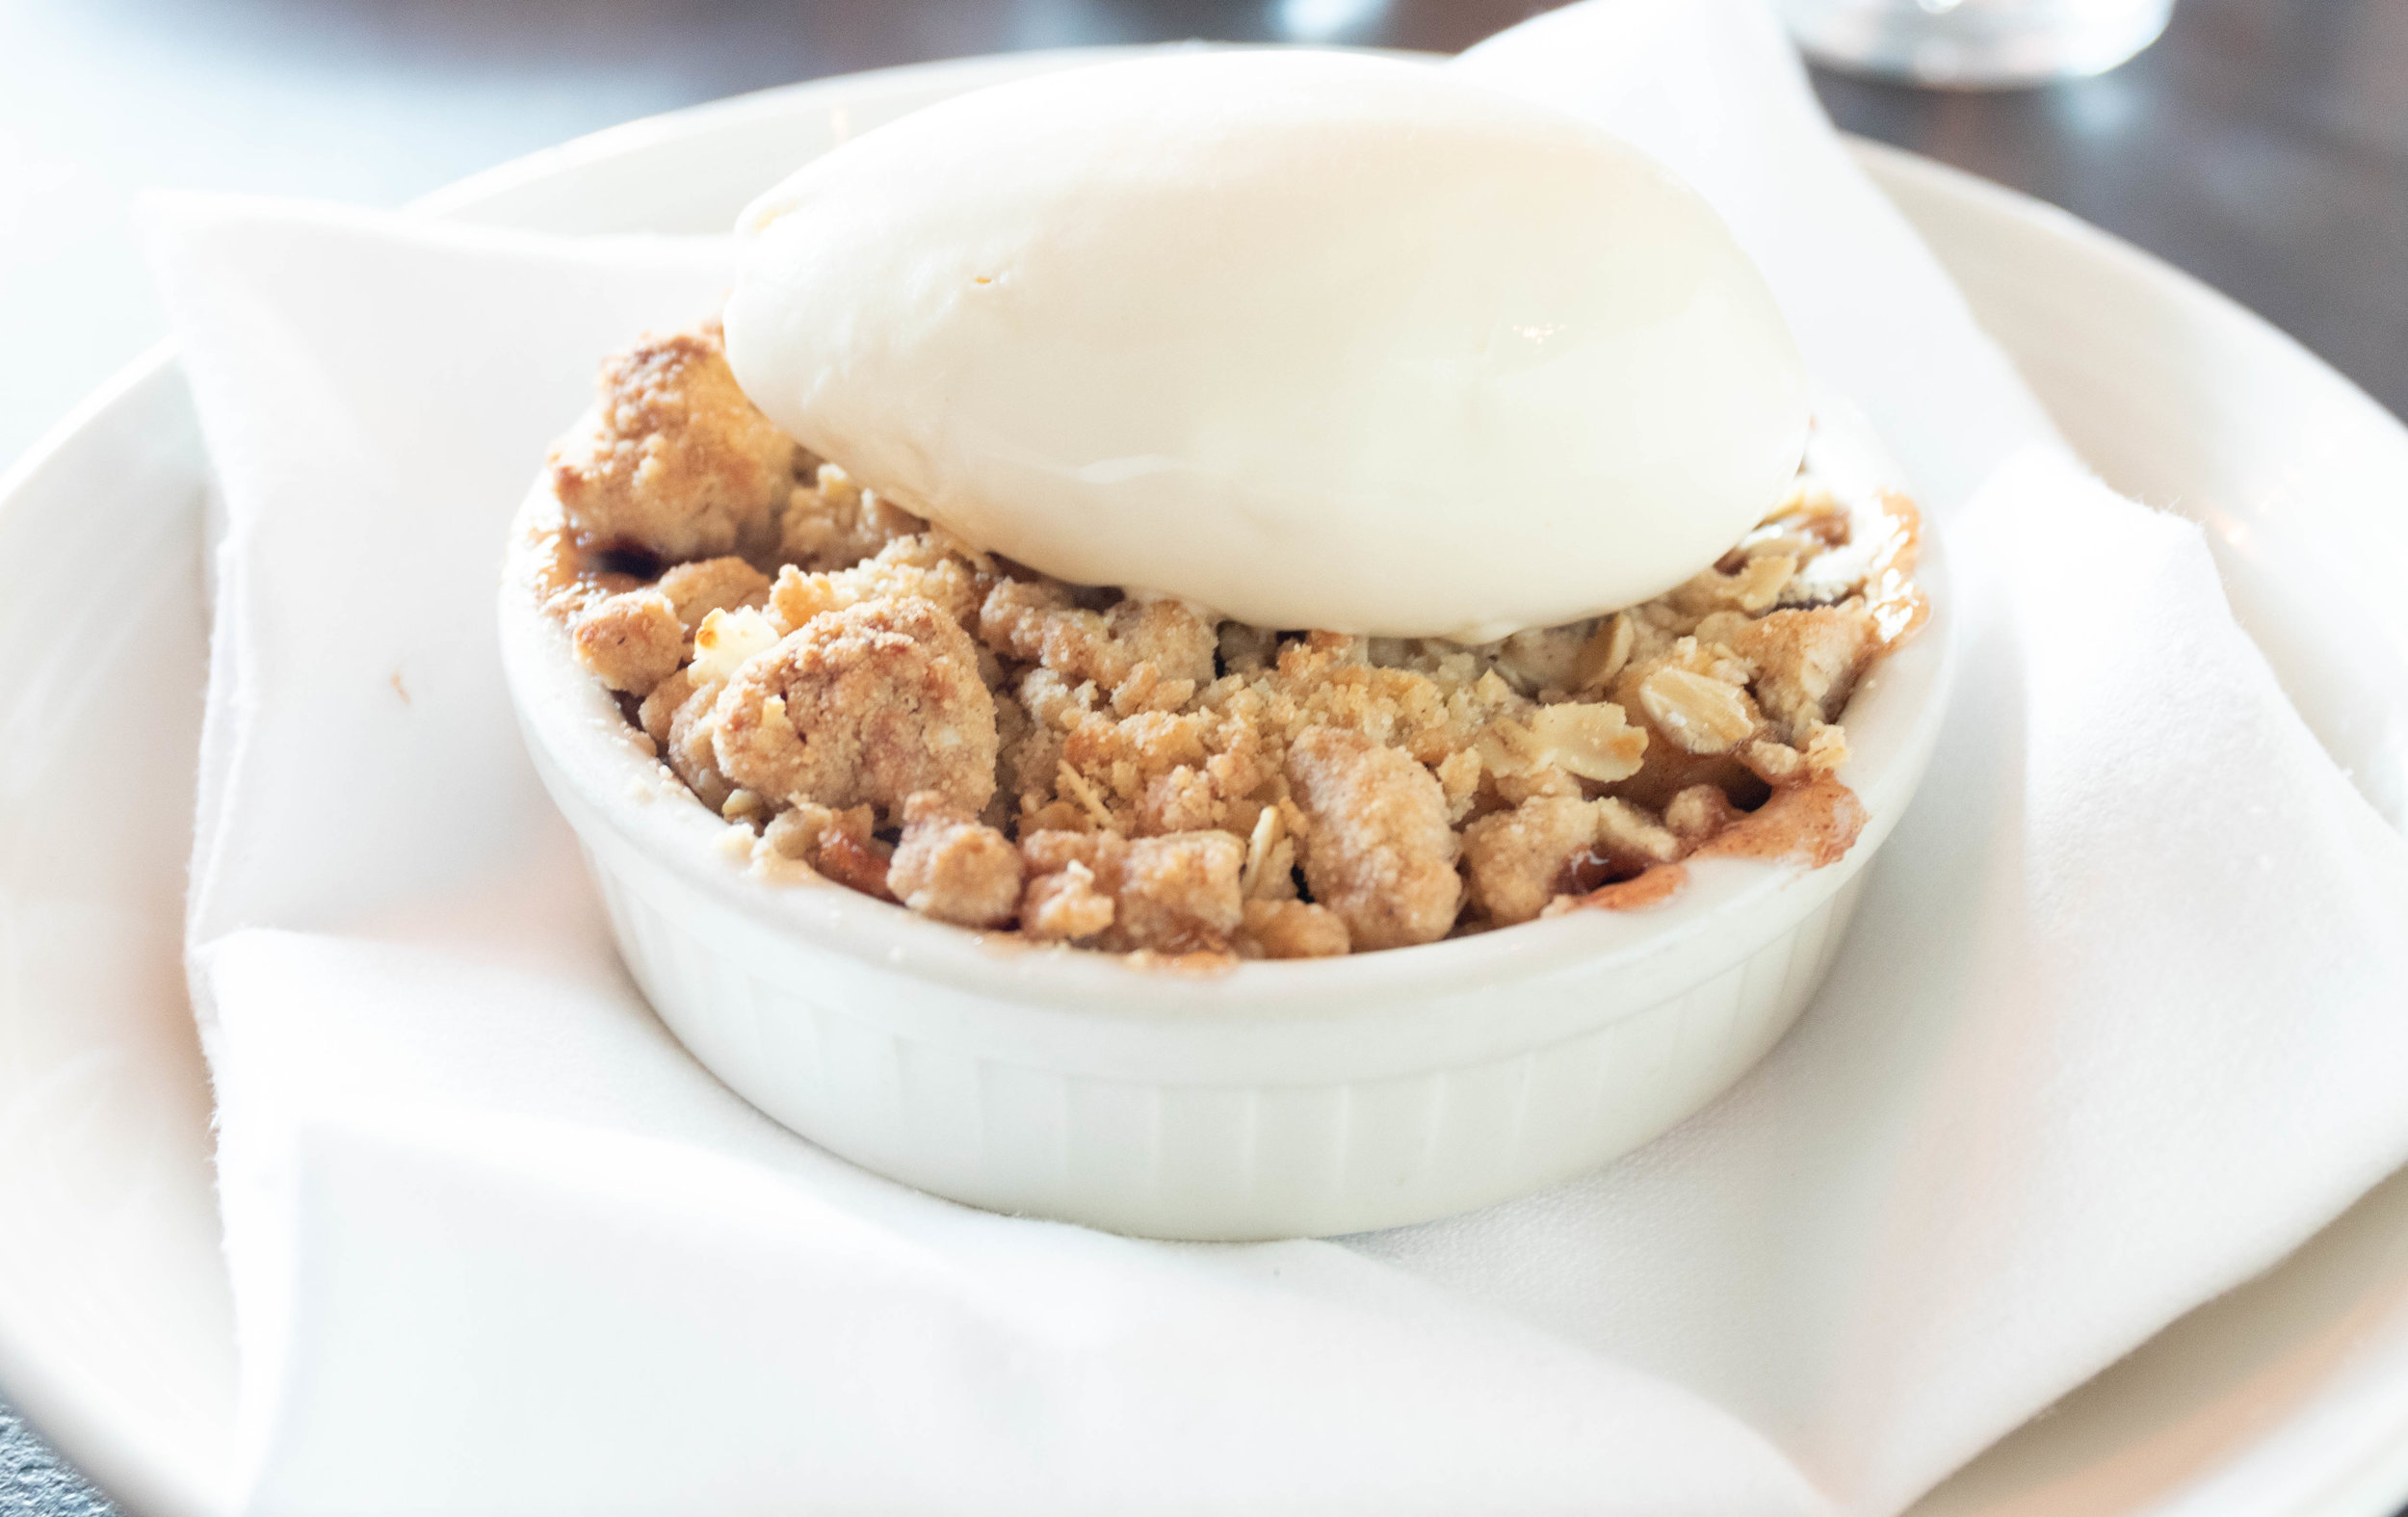 Professional foot photo of apple crisp at Scales in Portland, ME by Vision Balm in Charleston, SC.